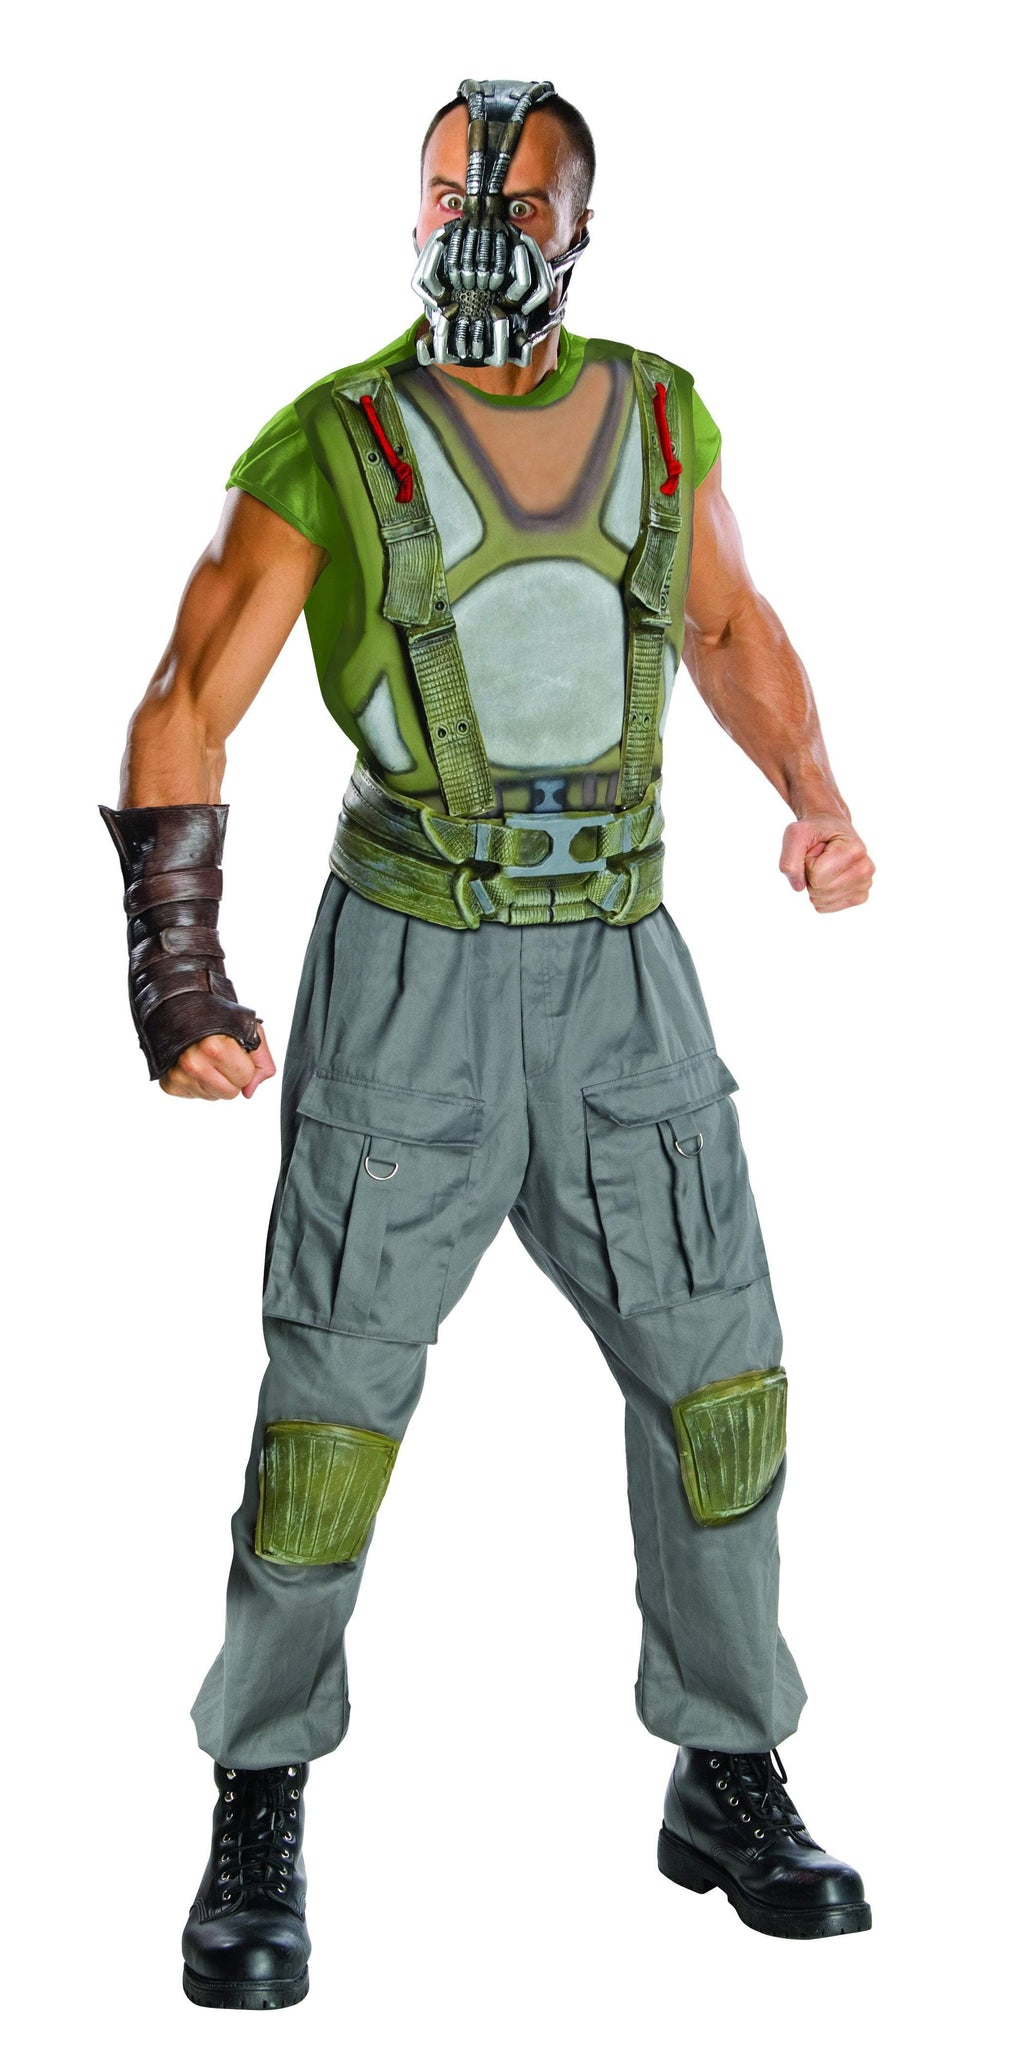 Rubies Costumes Adult Deluxe Bane Costume - Batman: The Dark Knight